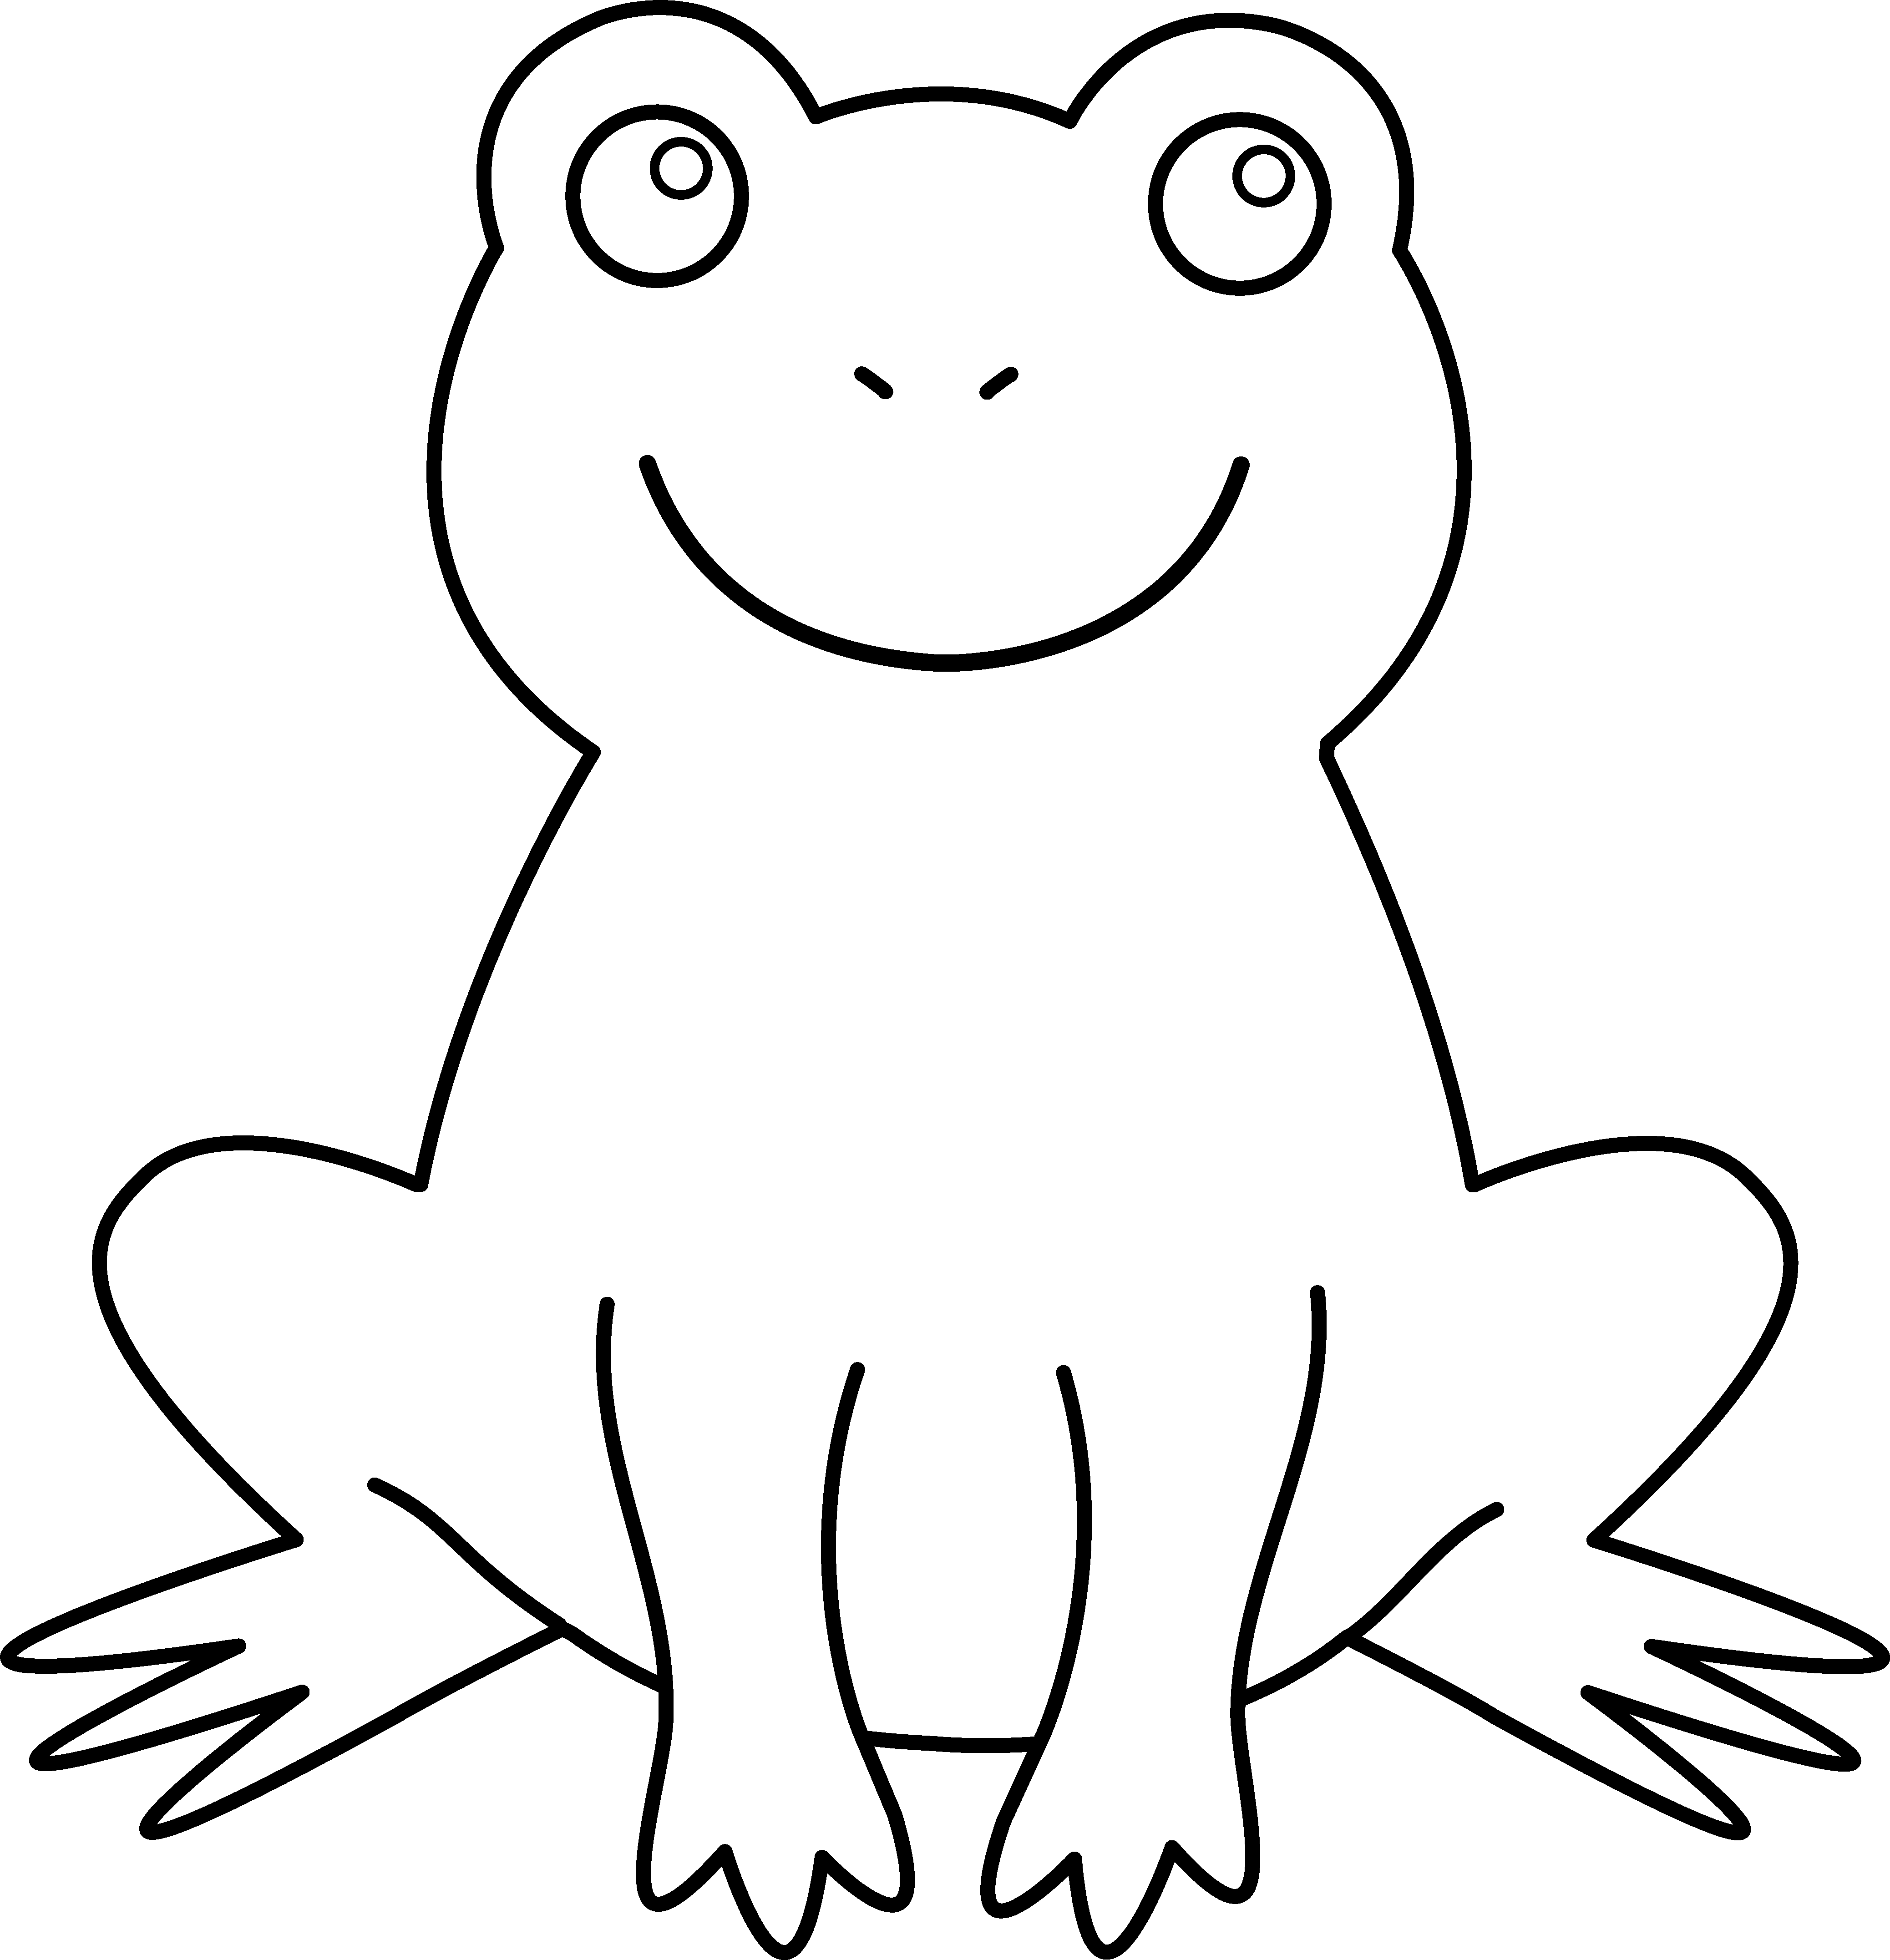 coloring images of frog realistic frog coloring pages free download on clipartmag frog coloring images of